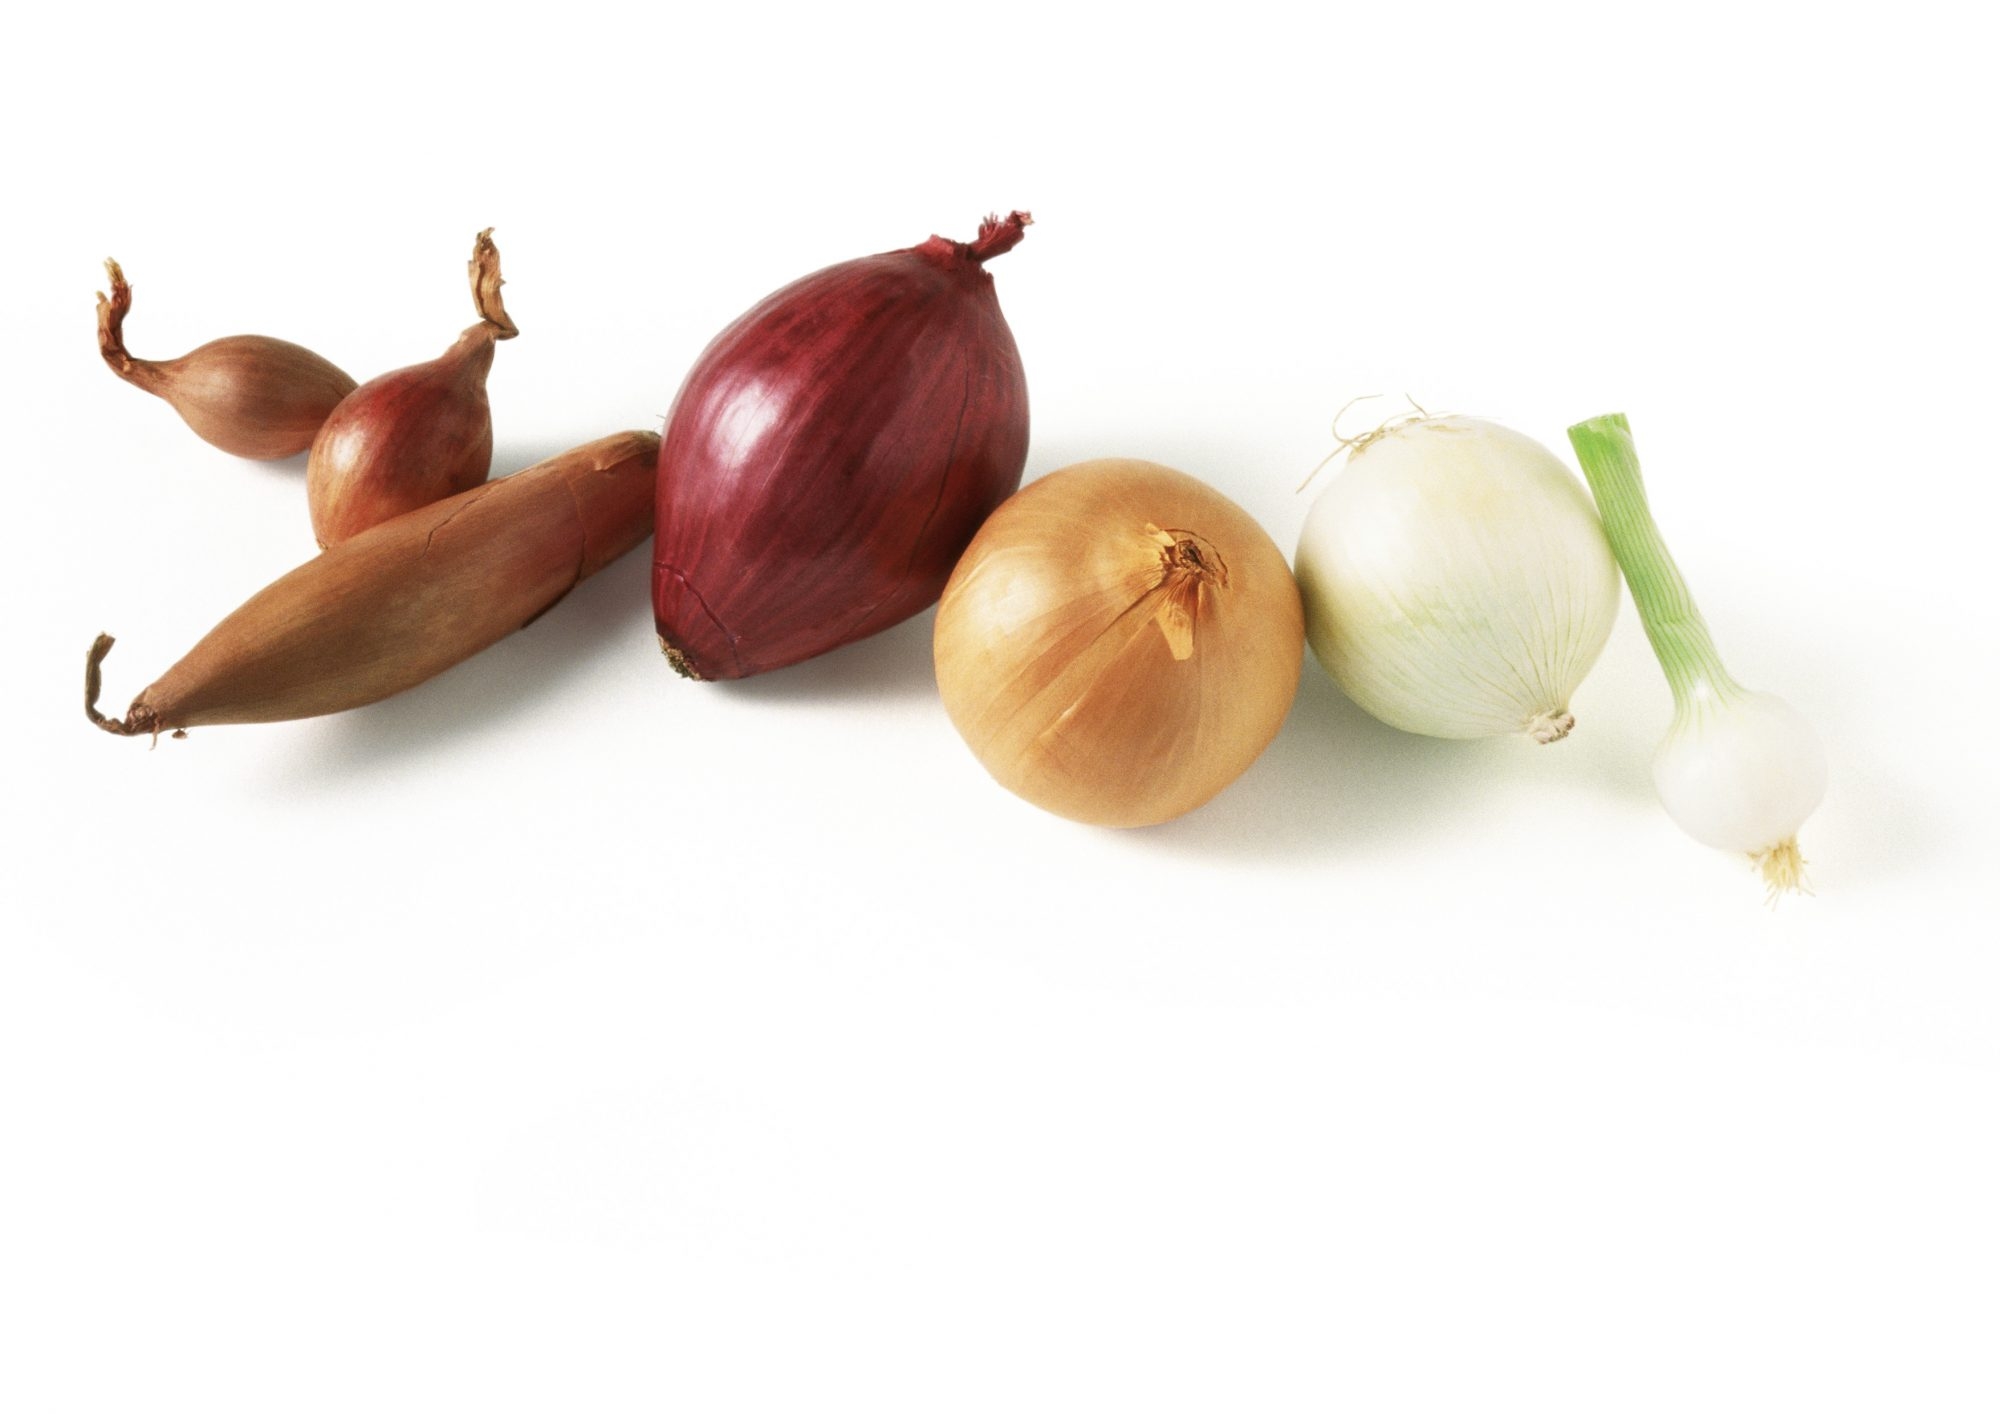 The Difference Between a Shallot and an Onion